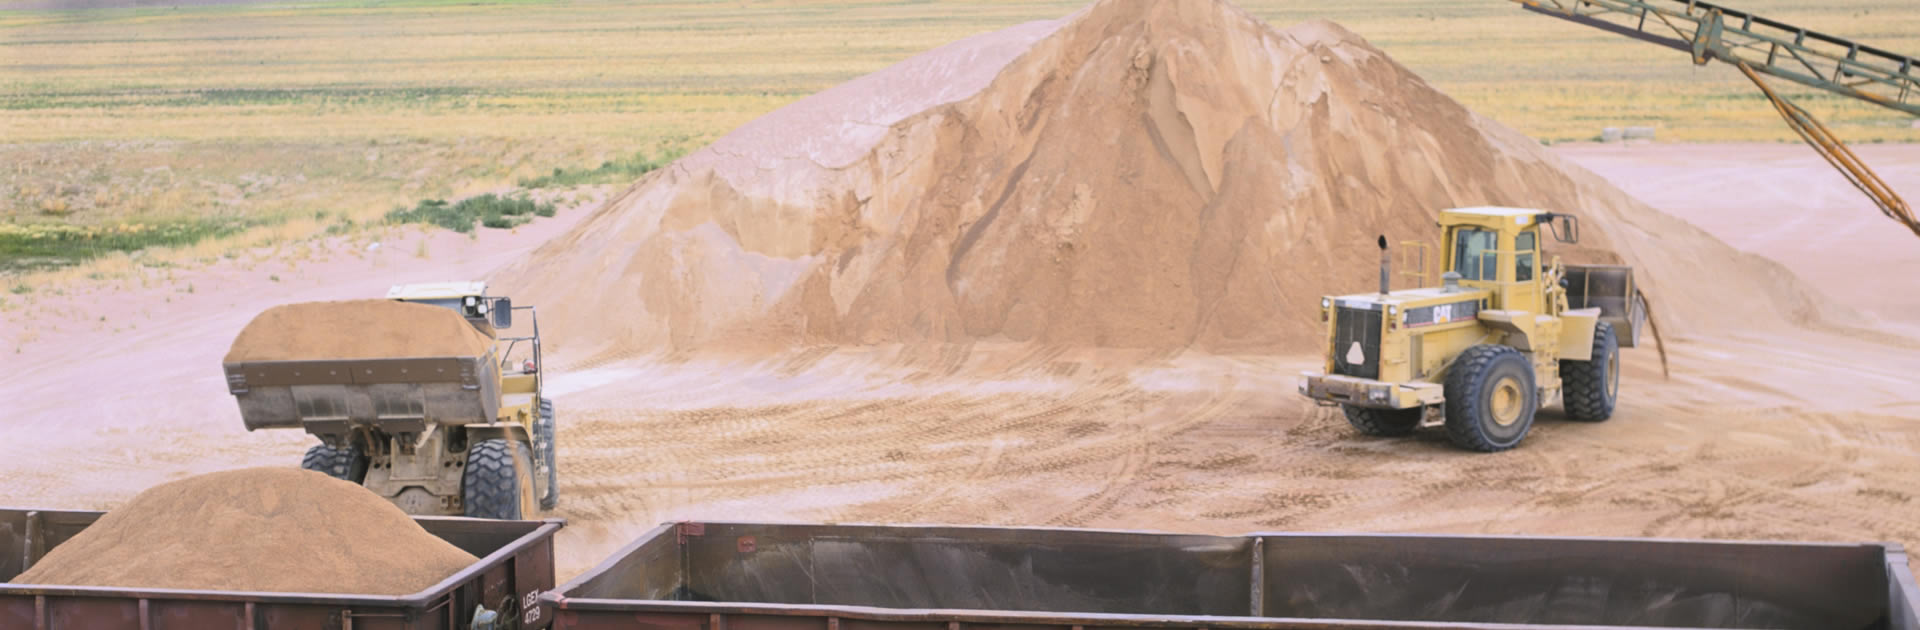 Sand pile and loading photo